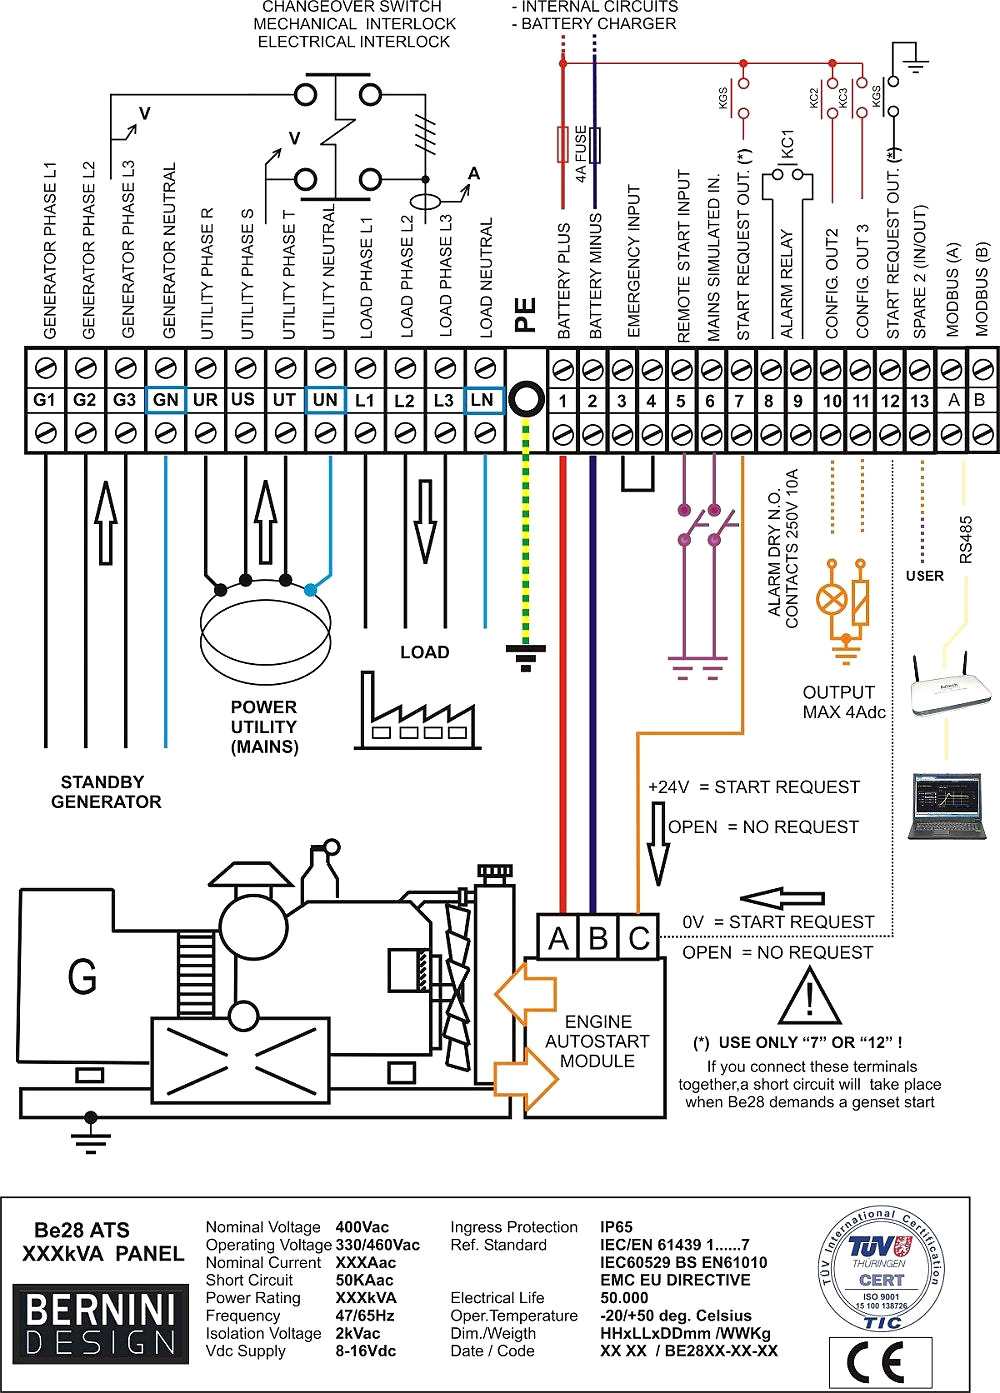 generac 6333 wiring diagram Collection-Portable Generator Transfer Switch Wiring Diagram For Manual Generac 14-e